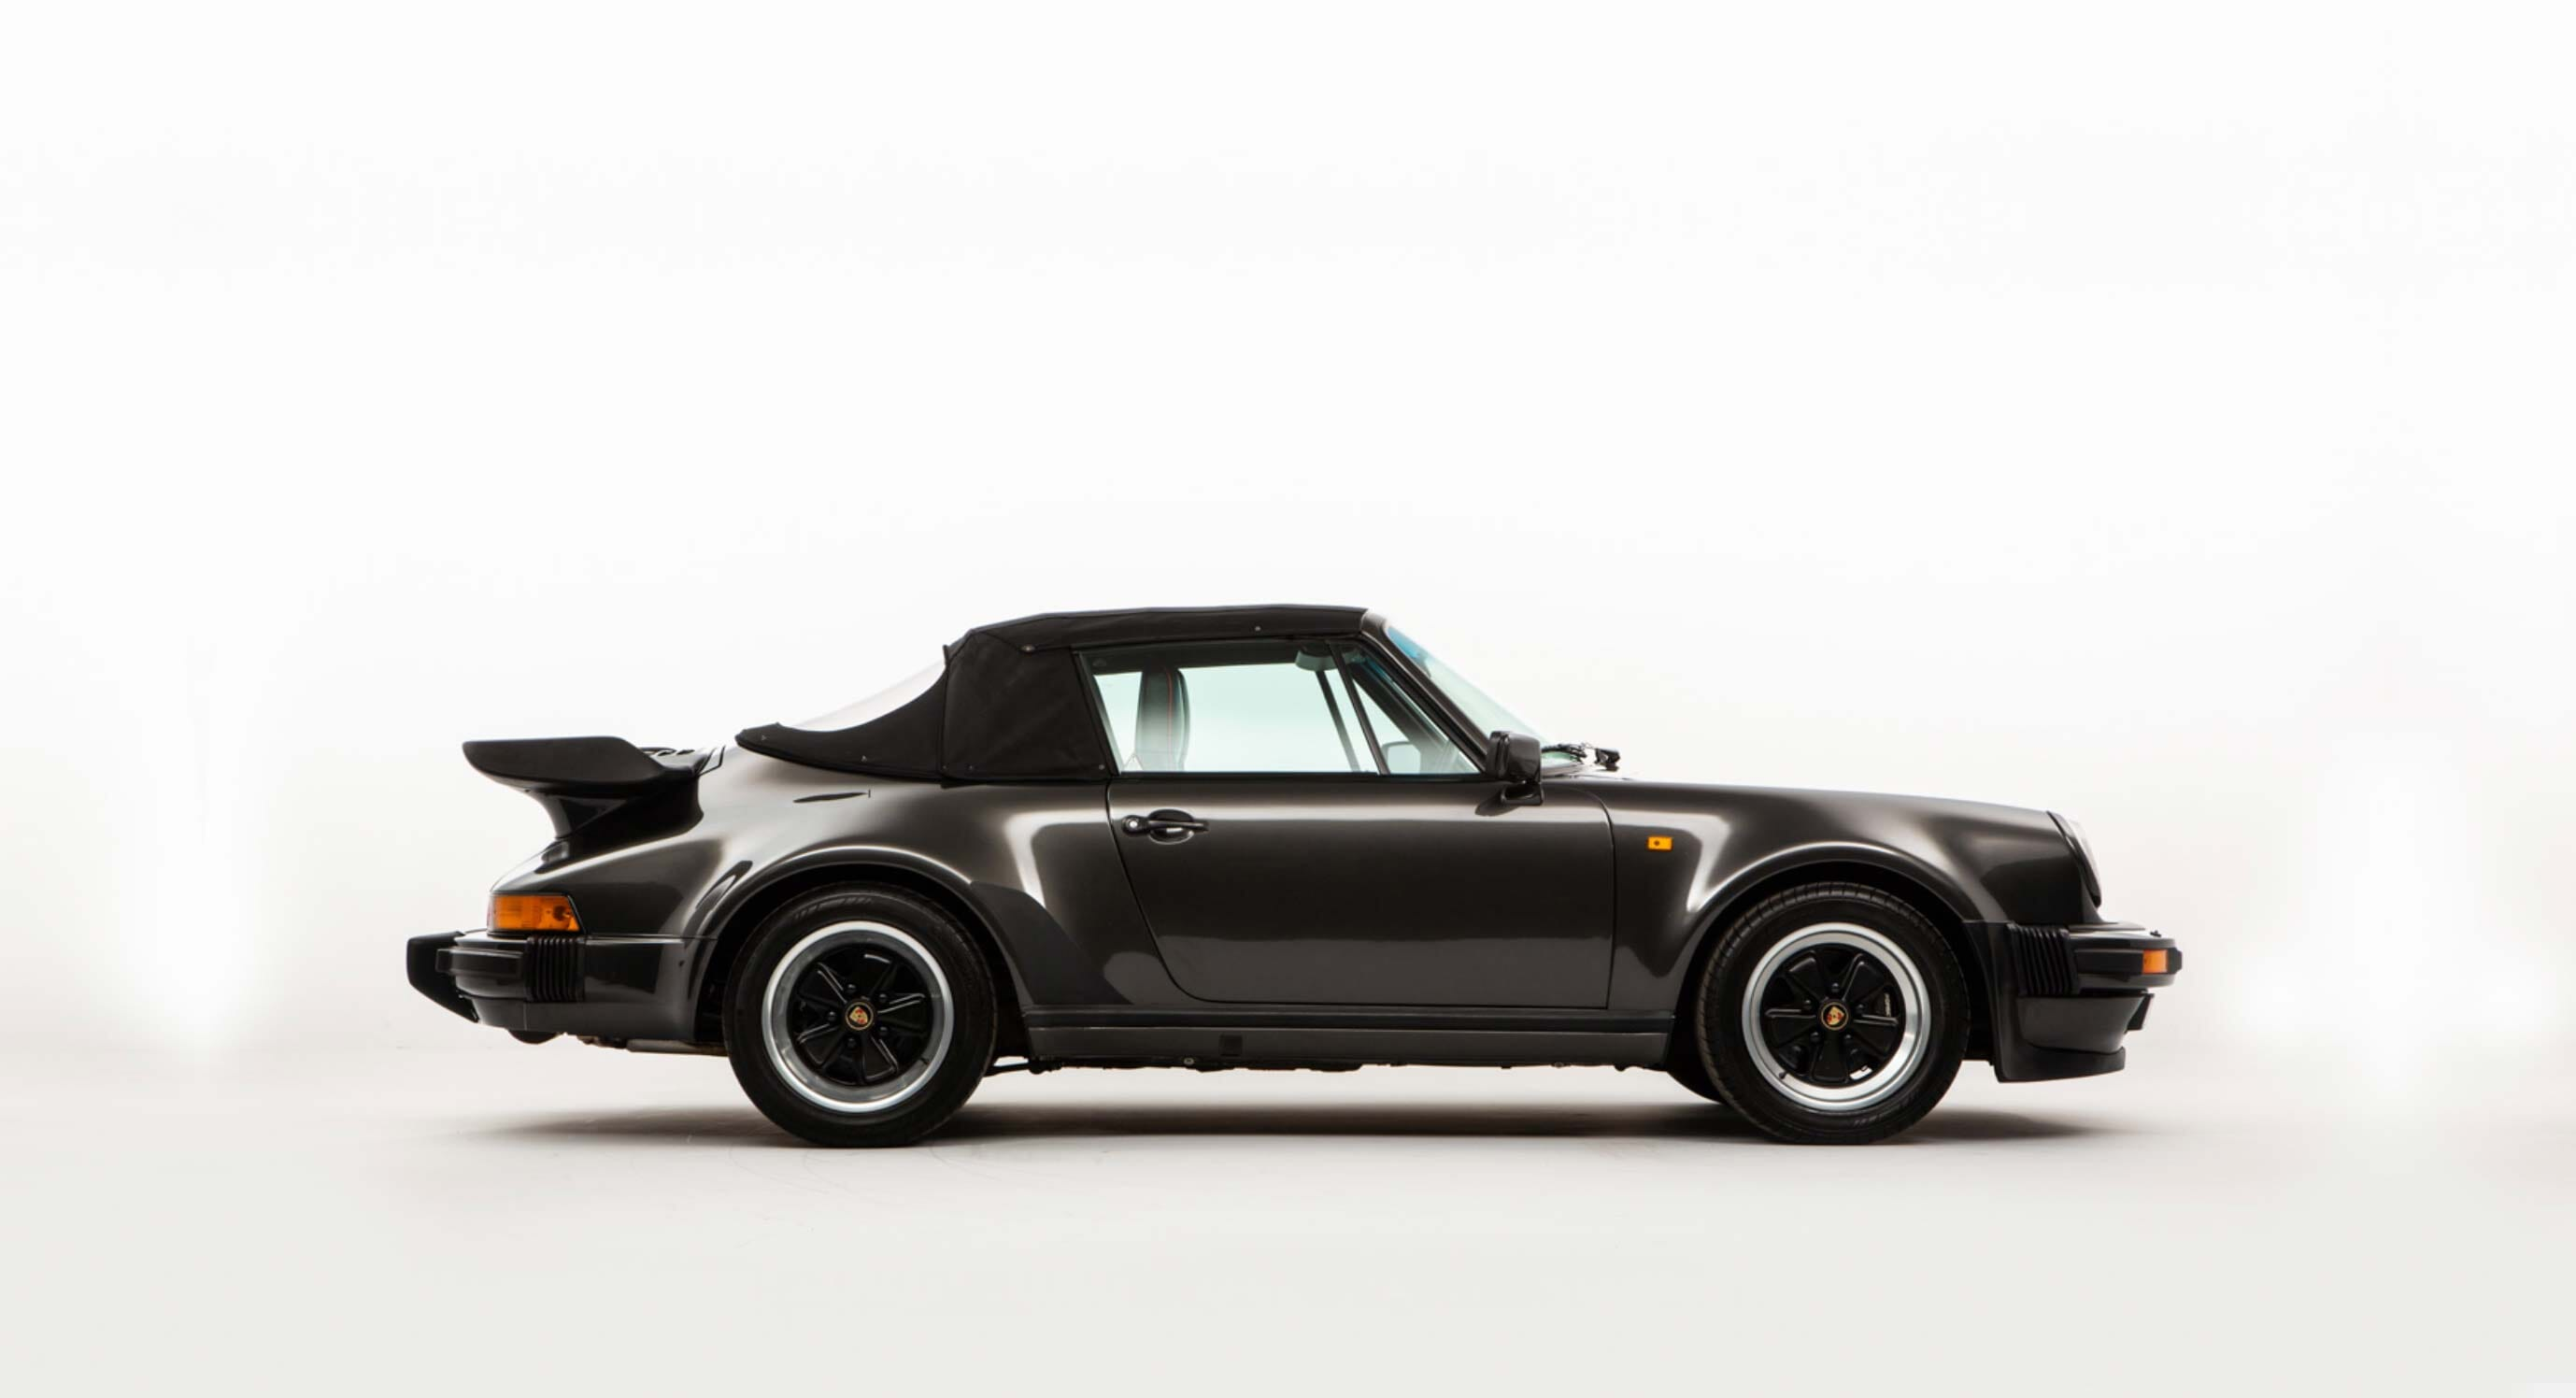 This timeless Porsche 911 Turbo has been revamped